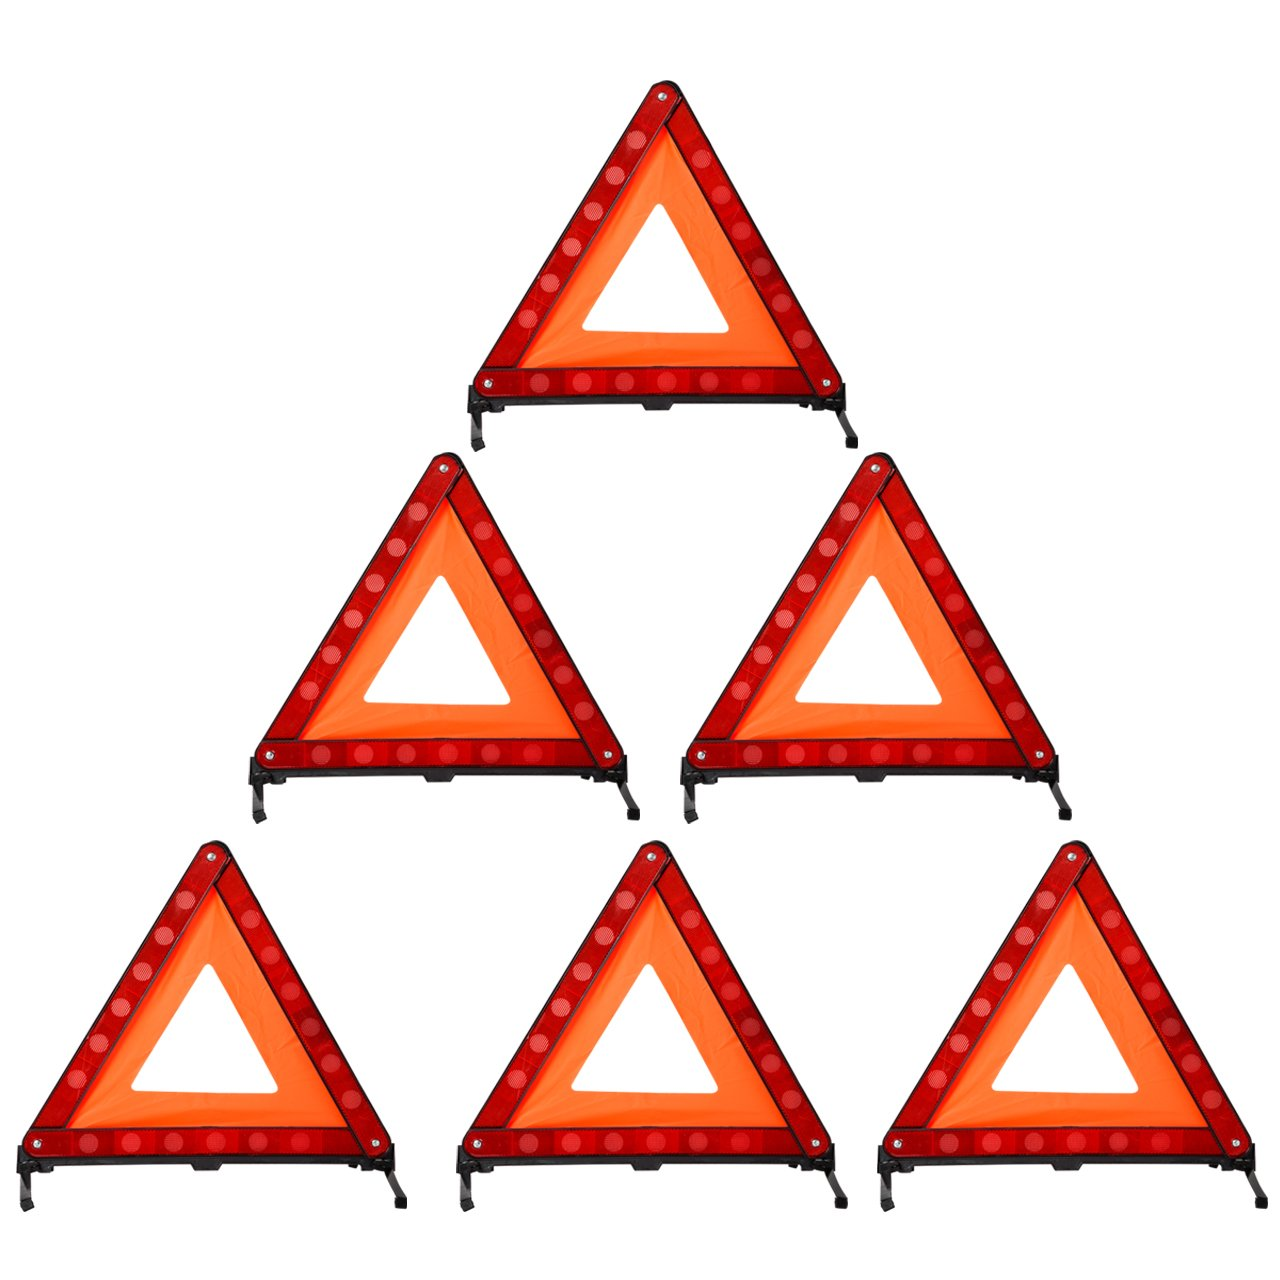 DEDC 6 Pack Warning Triangle Foldable Safety Triangle Triple Warning Kit Warning Triangle Reflector Roadside Hazard Sign Triangle Symbol for Emergency with Storage Bag